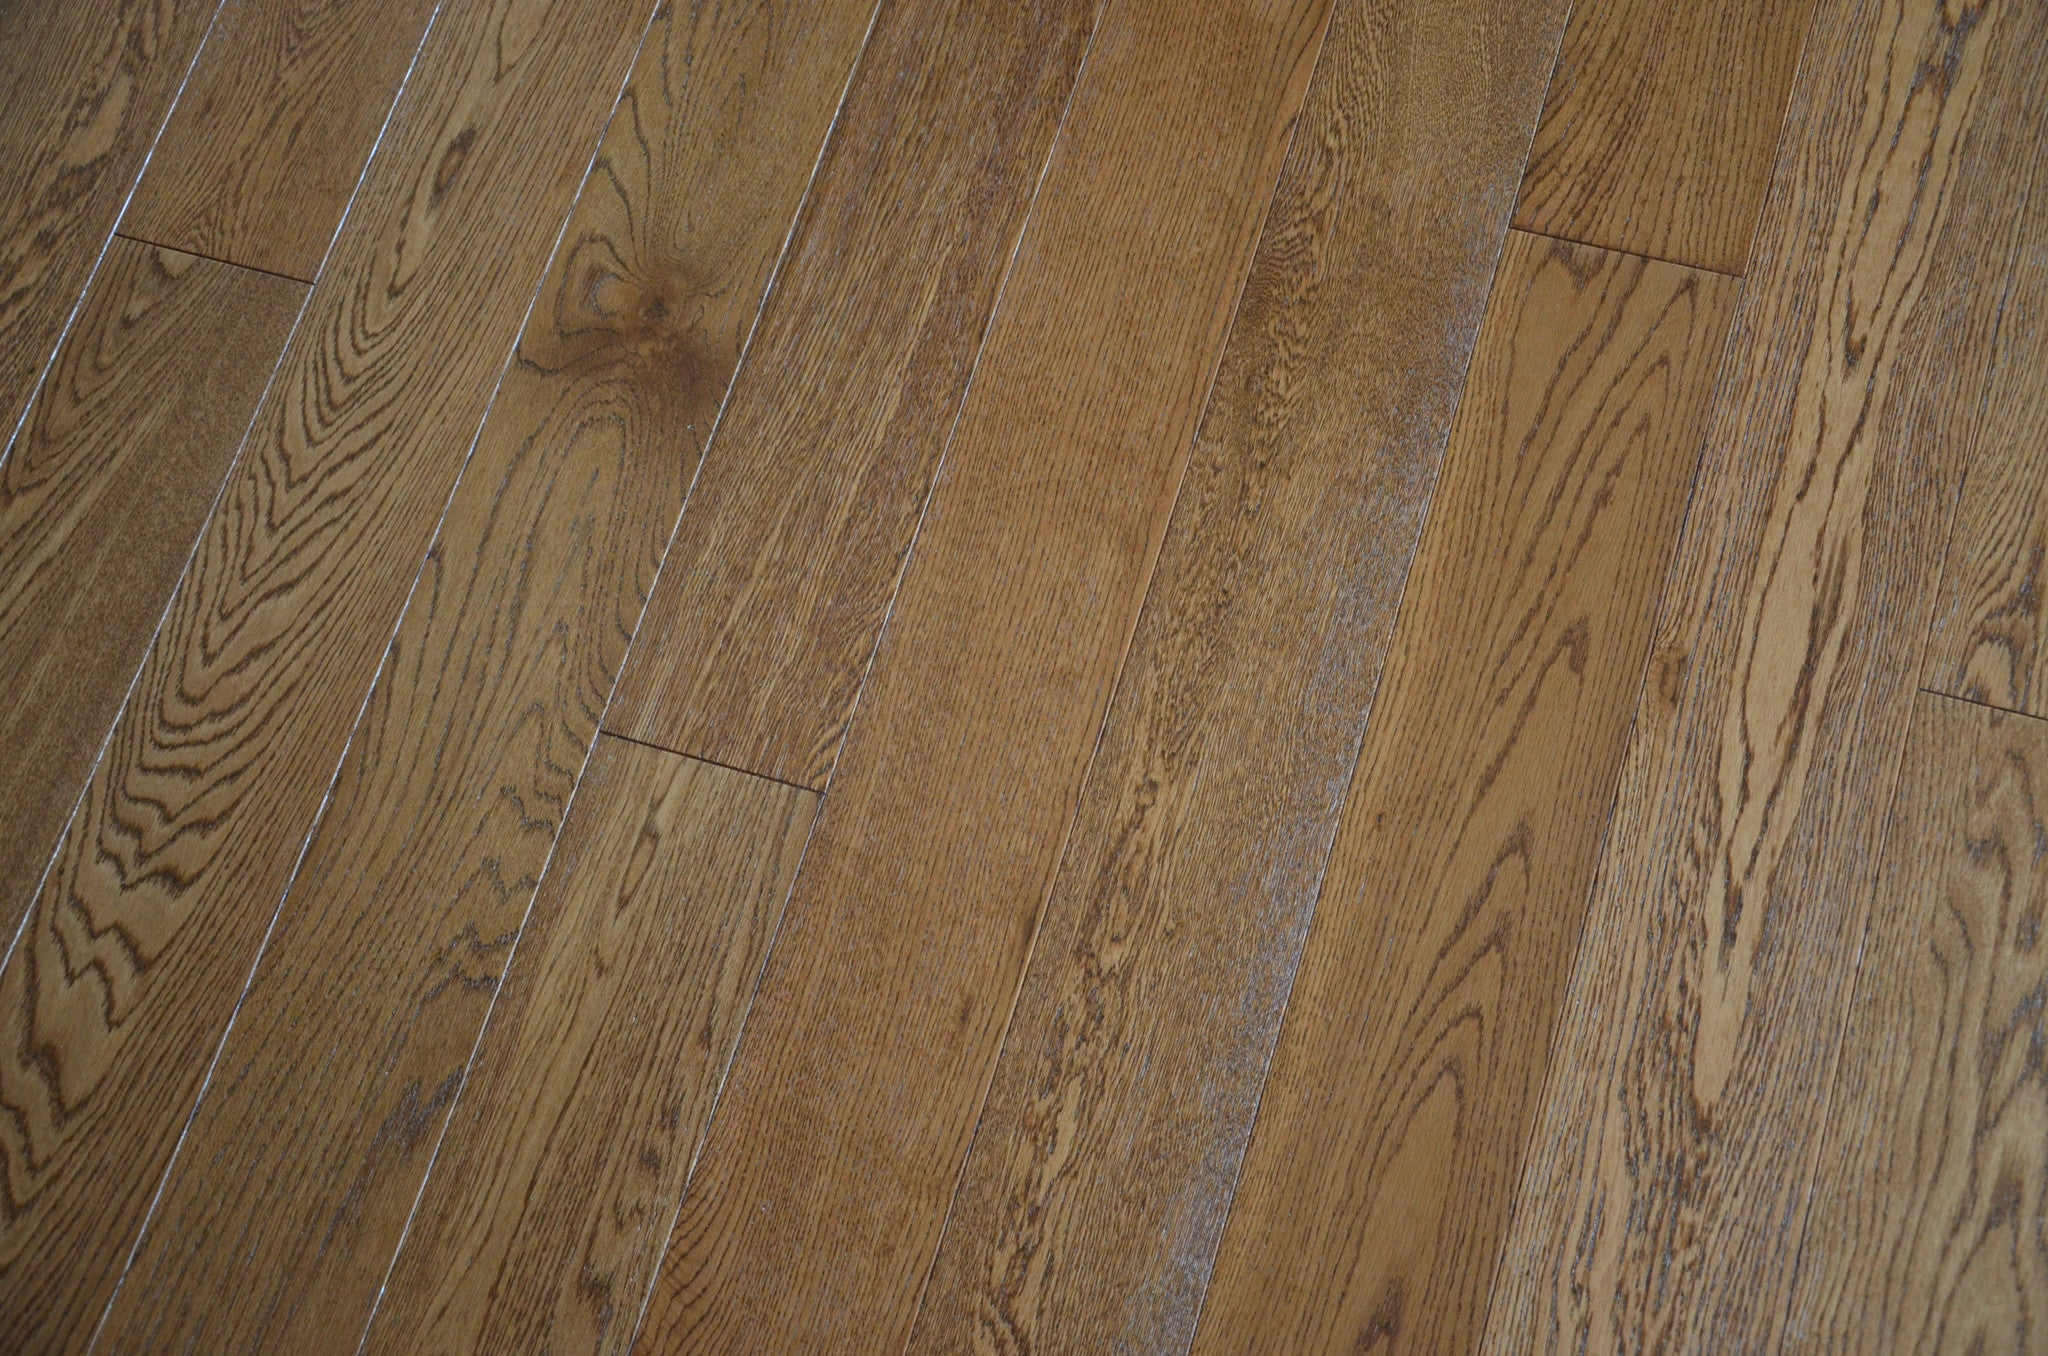 brown oak floor